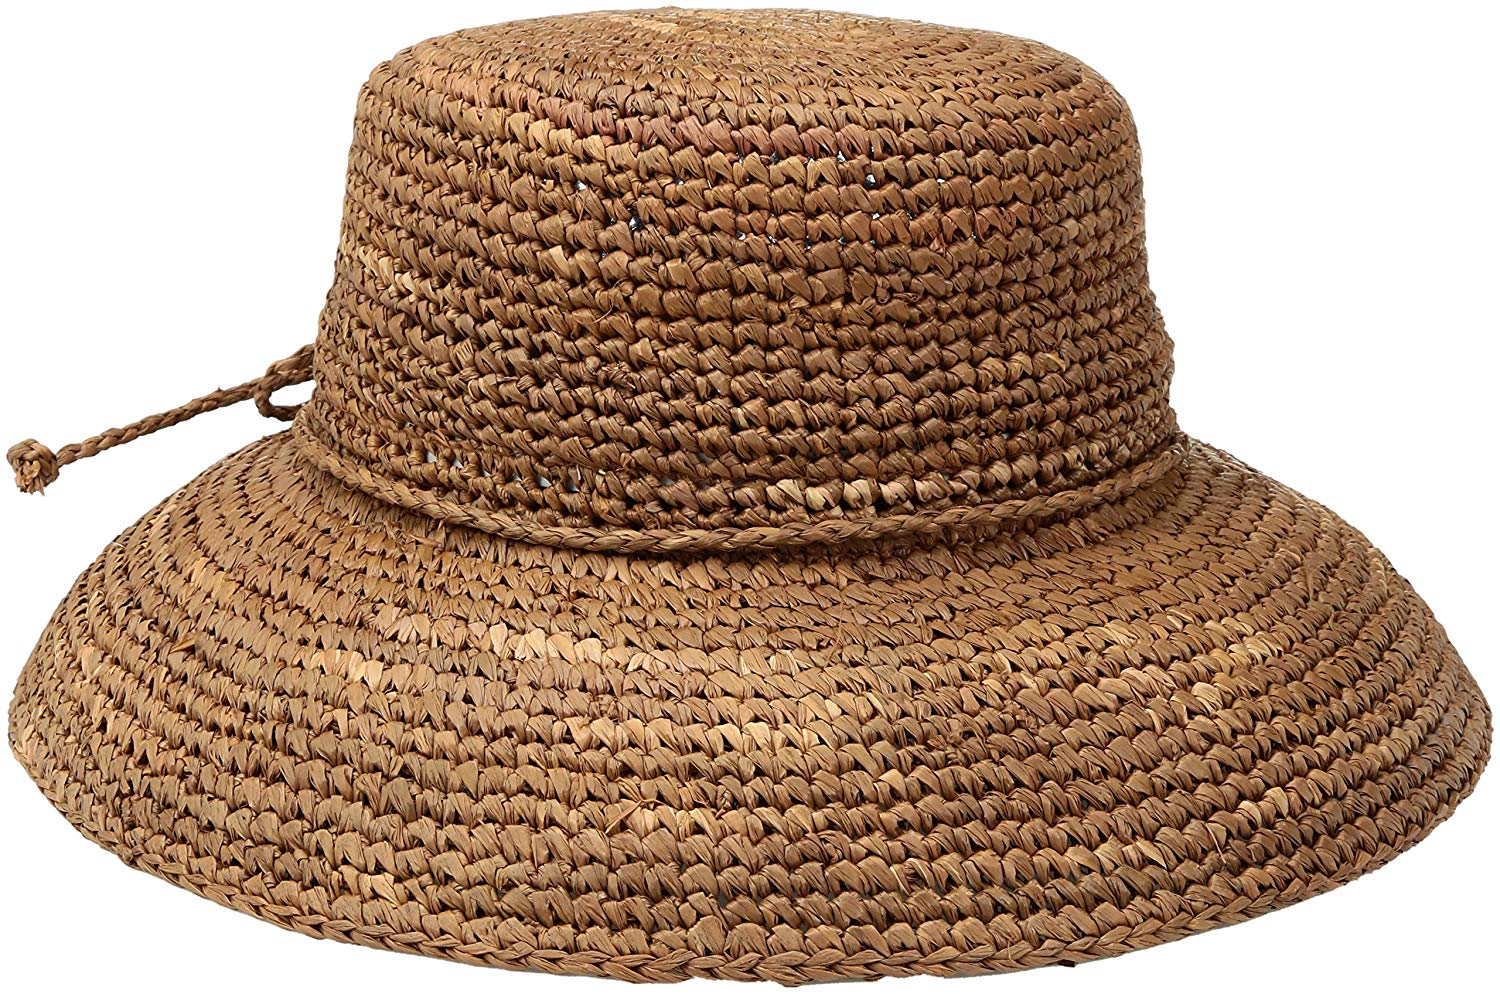 1d0acb6a9e058 Get Quotations · San Diego Hat Company Women s Crochet Raffia Hat